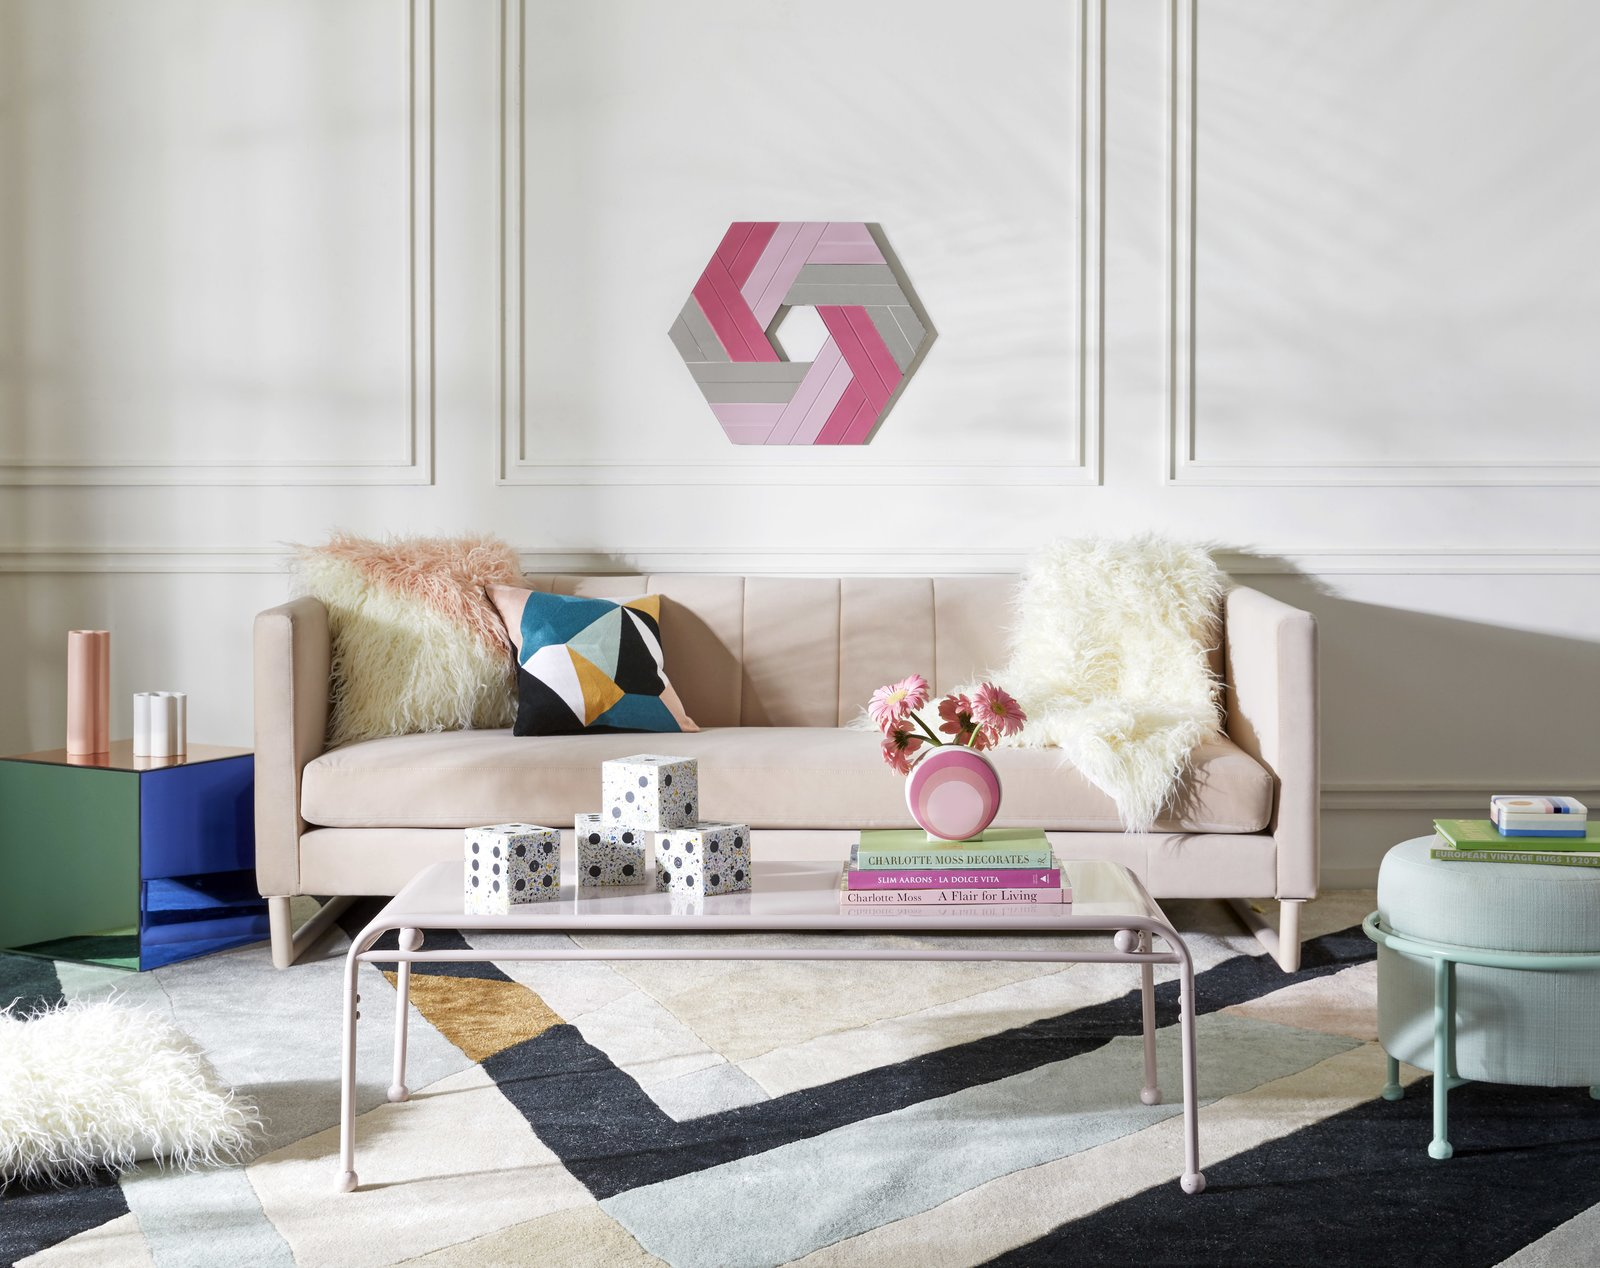 Take a Peek at Amazon's Colorful Collaboration With Iconic Designer Jonathan Adler